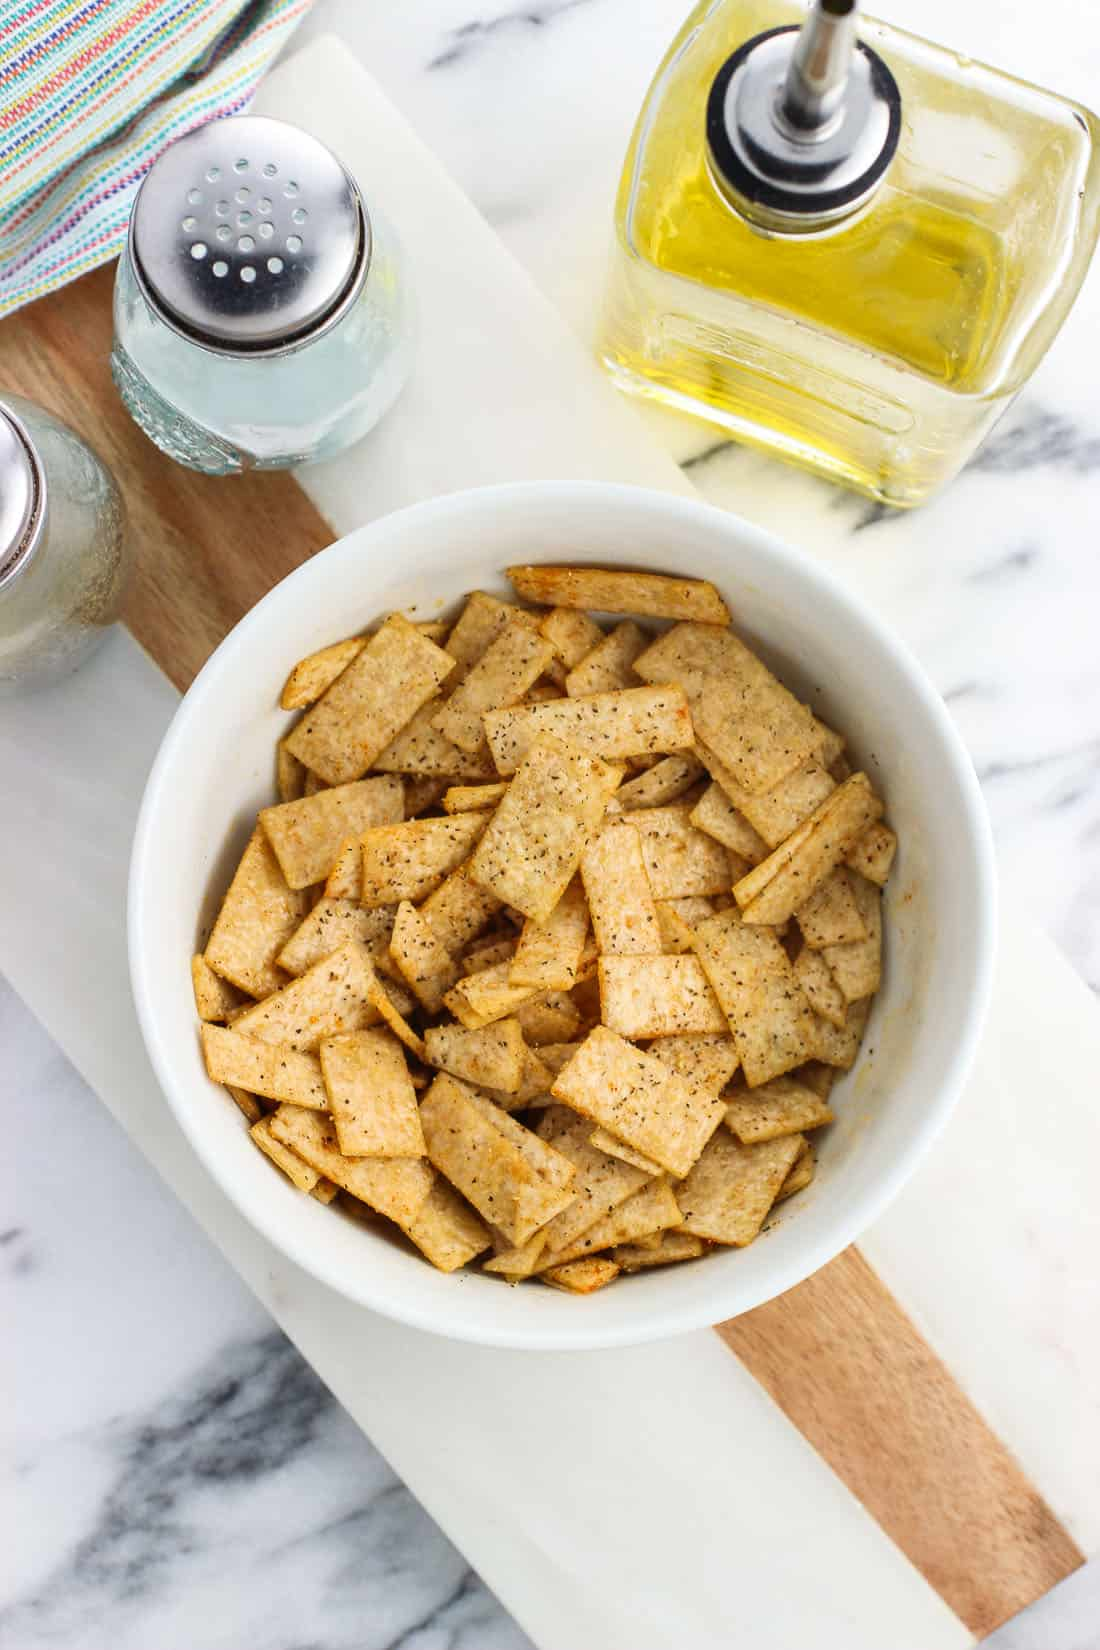 Tortilla strips in a bowl tossed with oil before being baked.